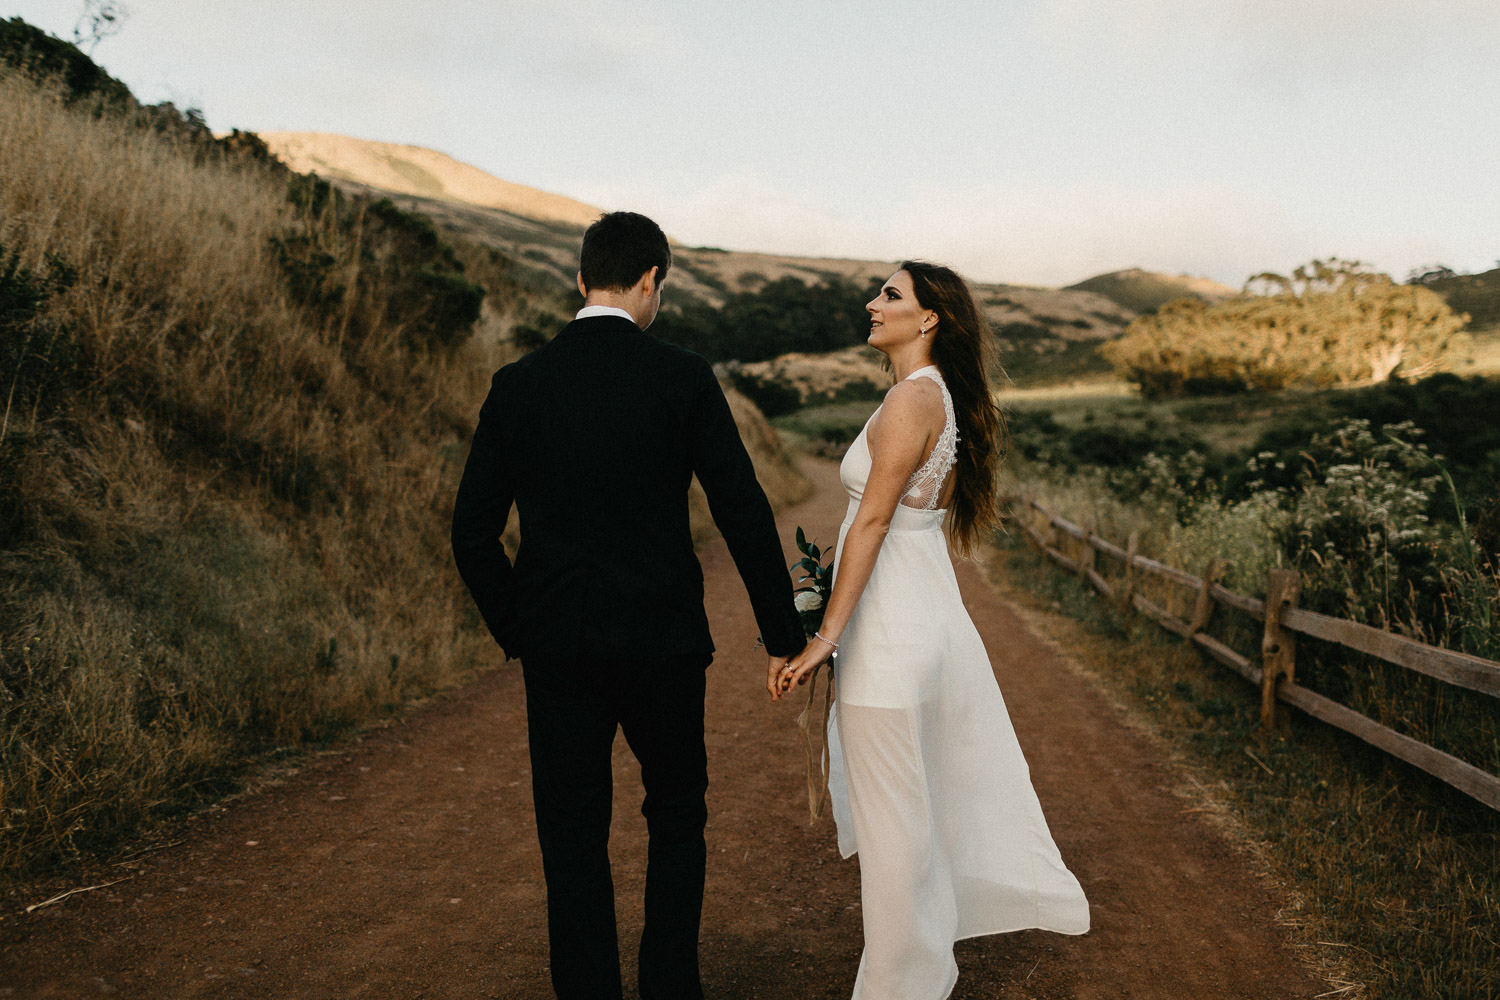 Image of groom and bride stand together on the road